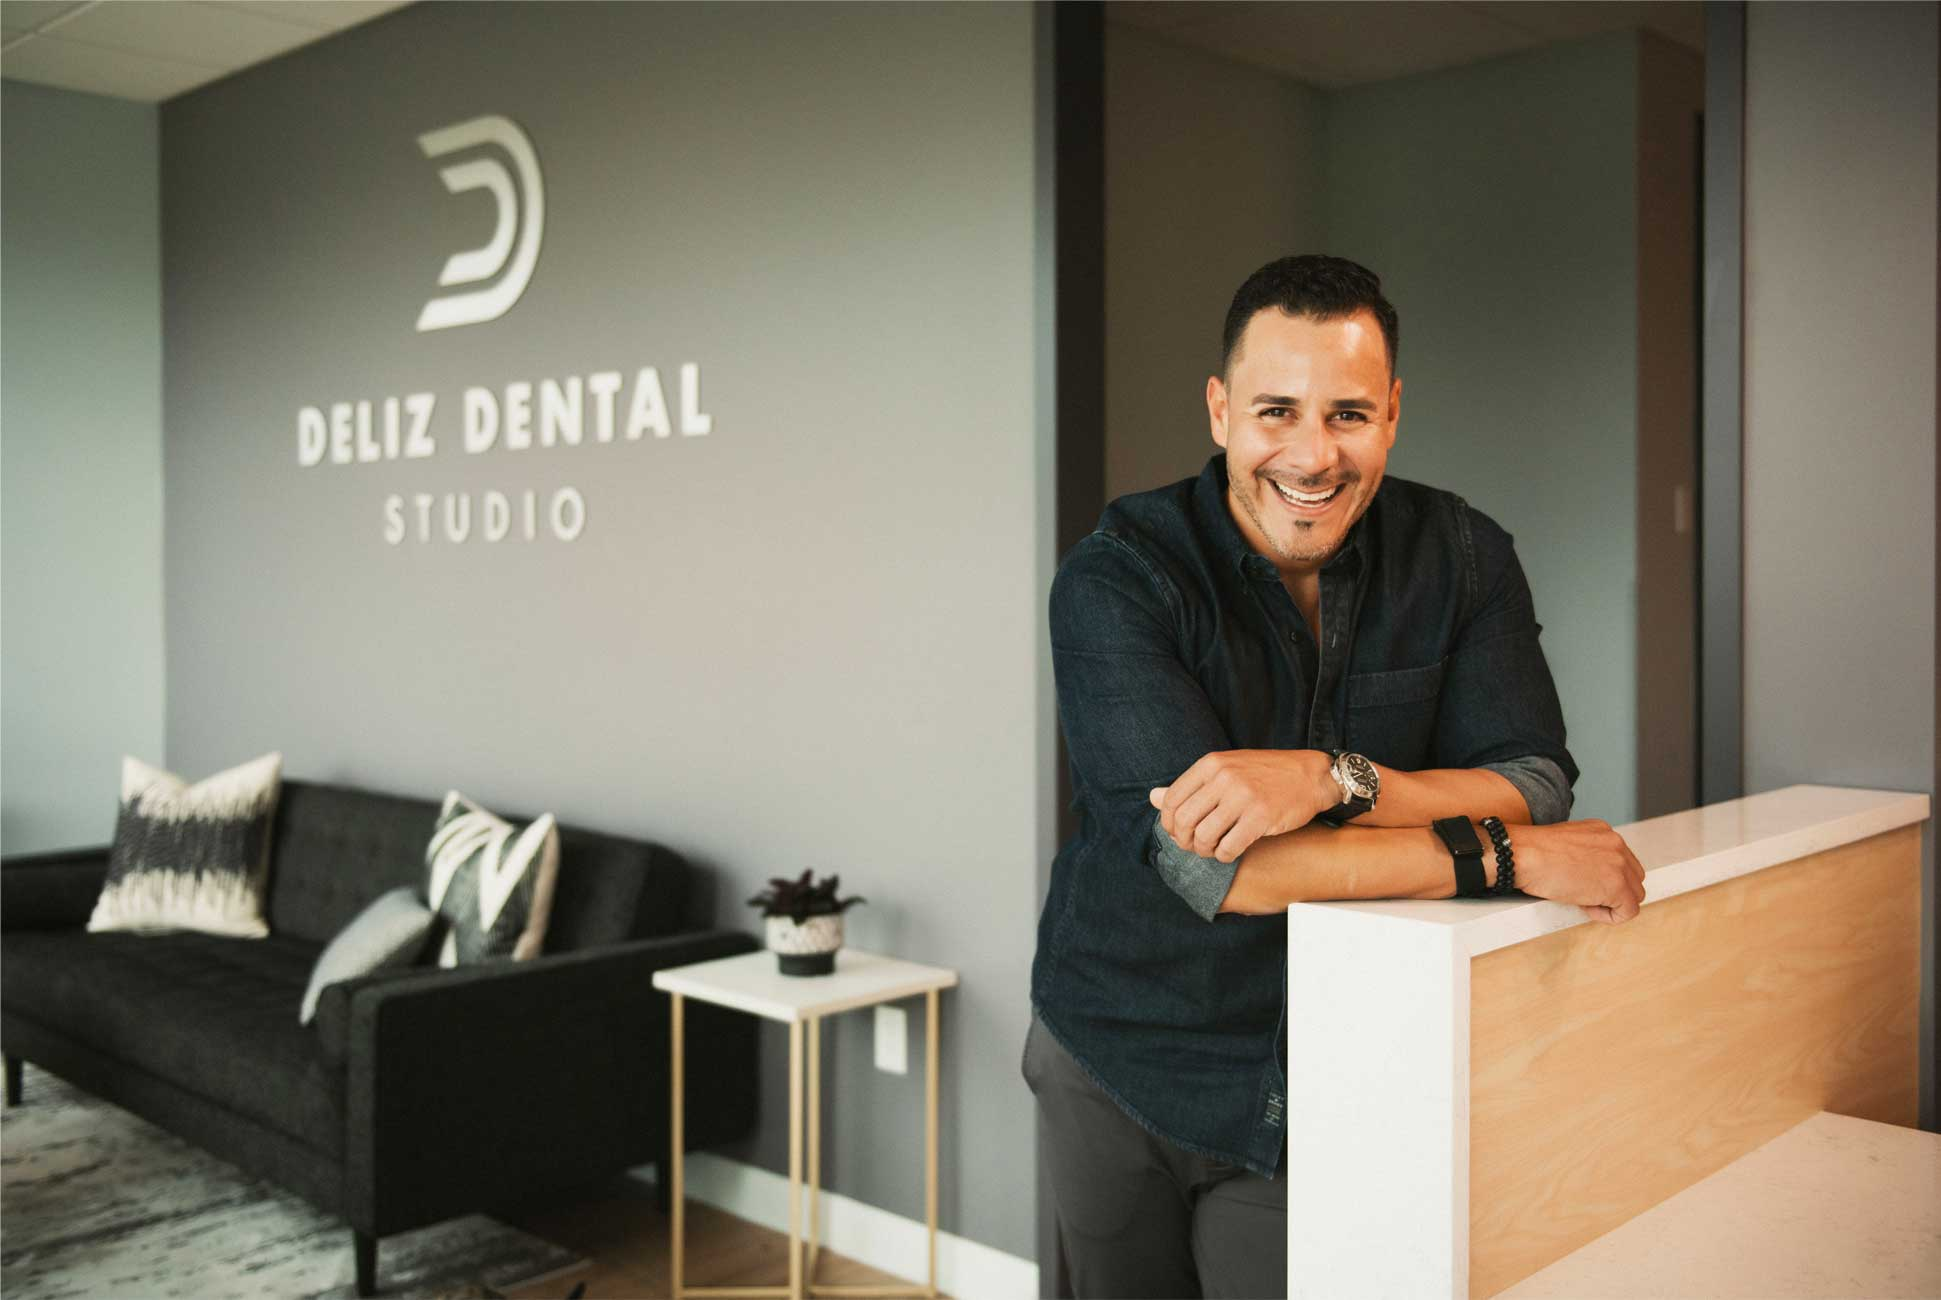 Photo of Dr. Deliz leaning against a counter and smiling